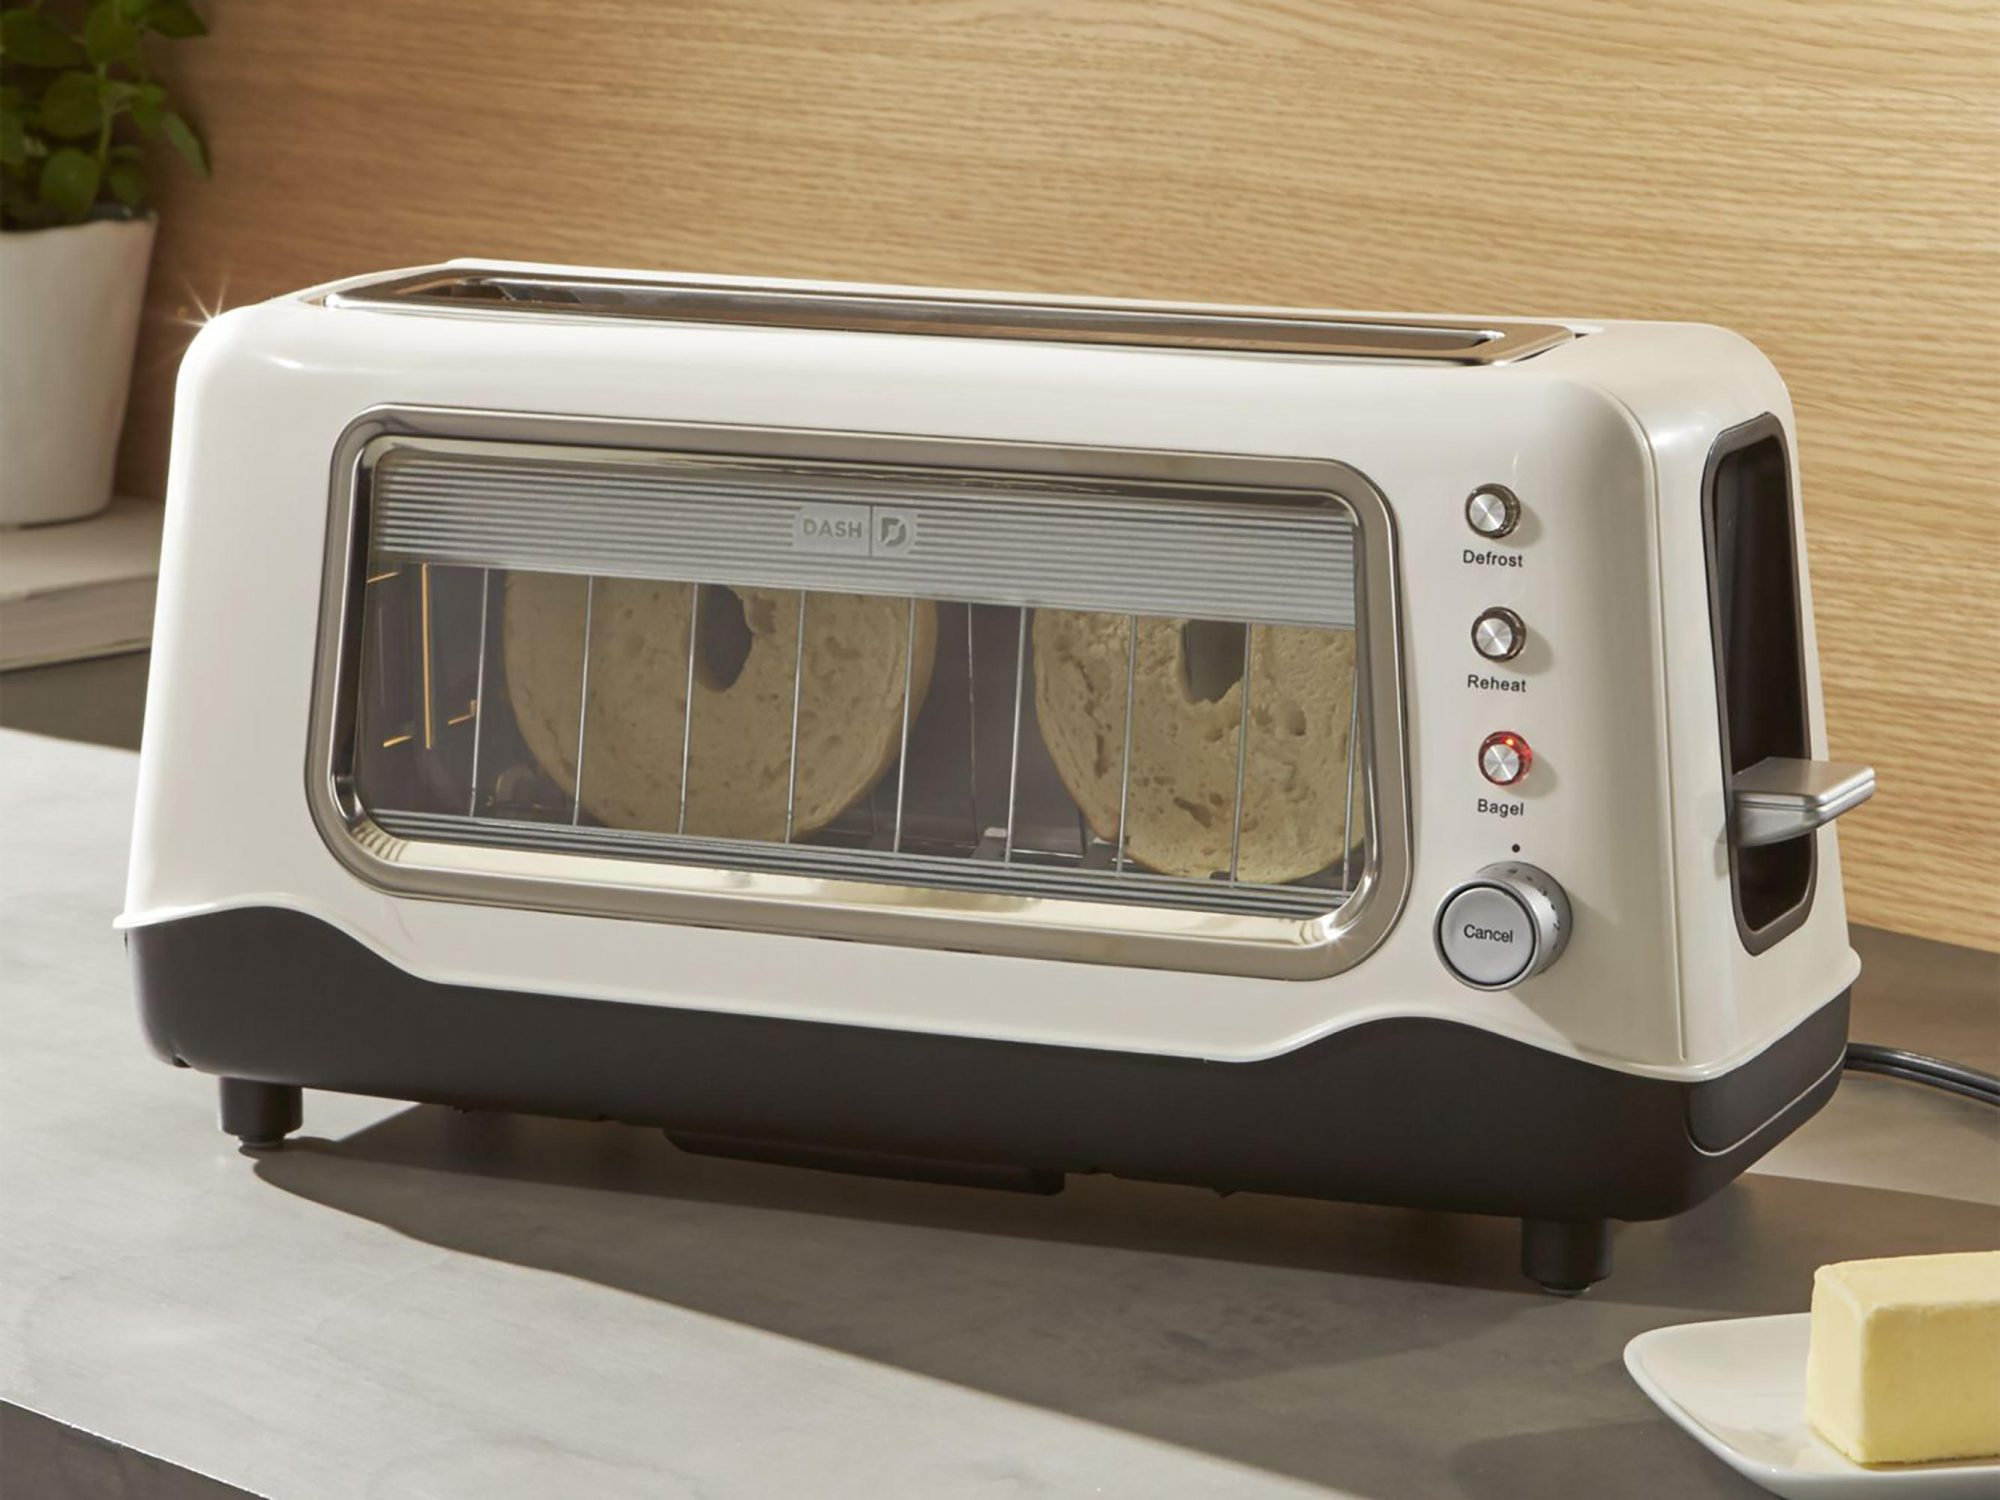 10 Starter-Kitchen Items We Wouldn't Have Bought Ourselves—But We Use All the Time 1804w-Dash-Toaster